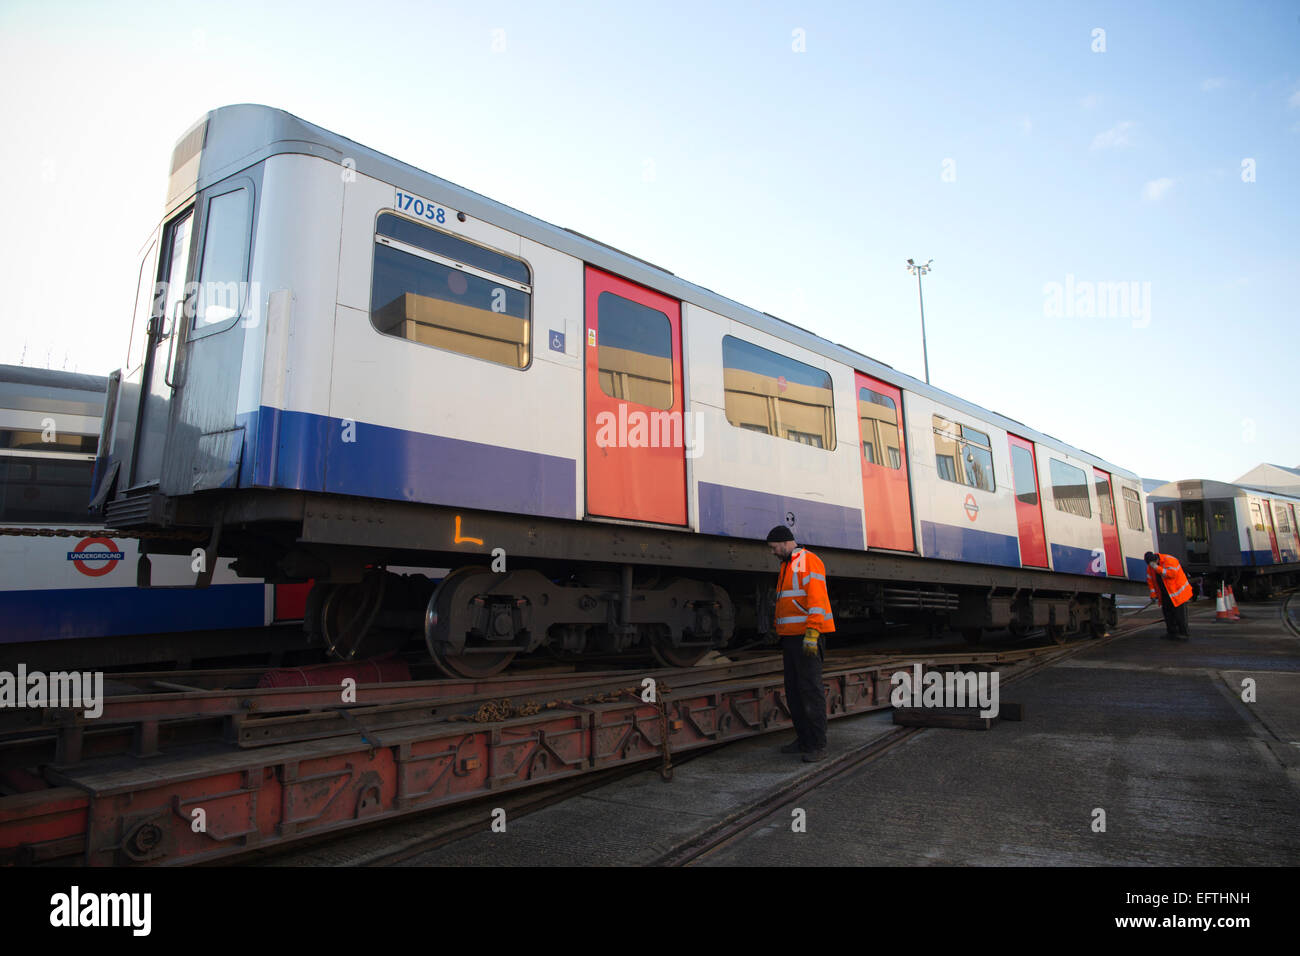 Decommission of 'D' Stock carriages used on the London Underground, London, England, UK - Stock Image